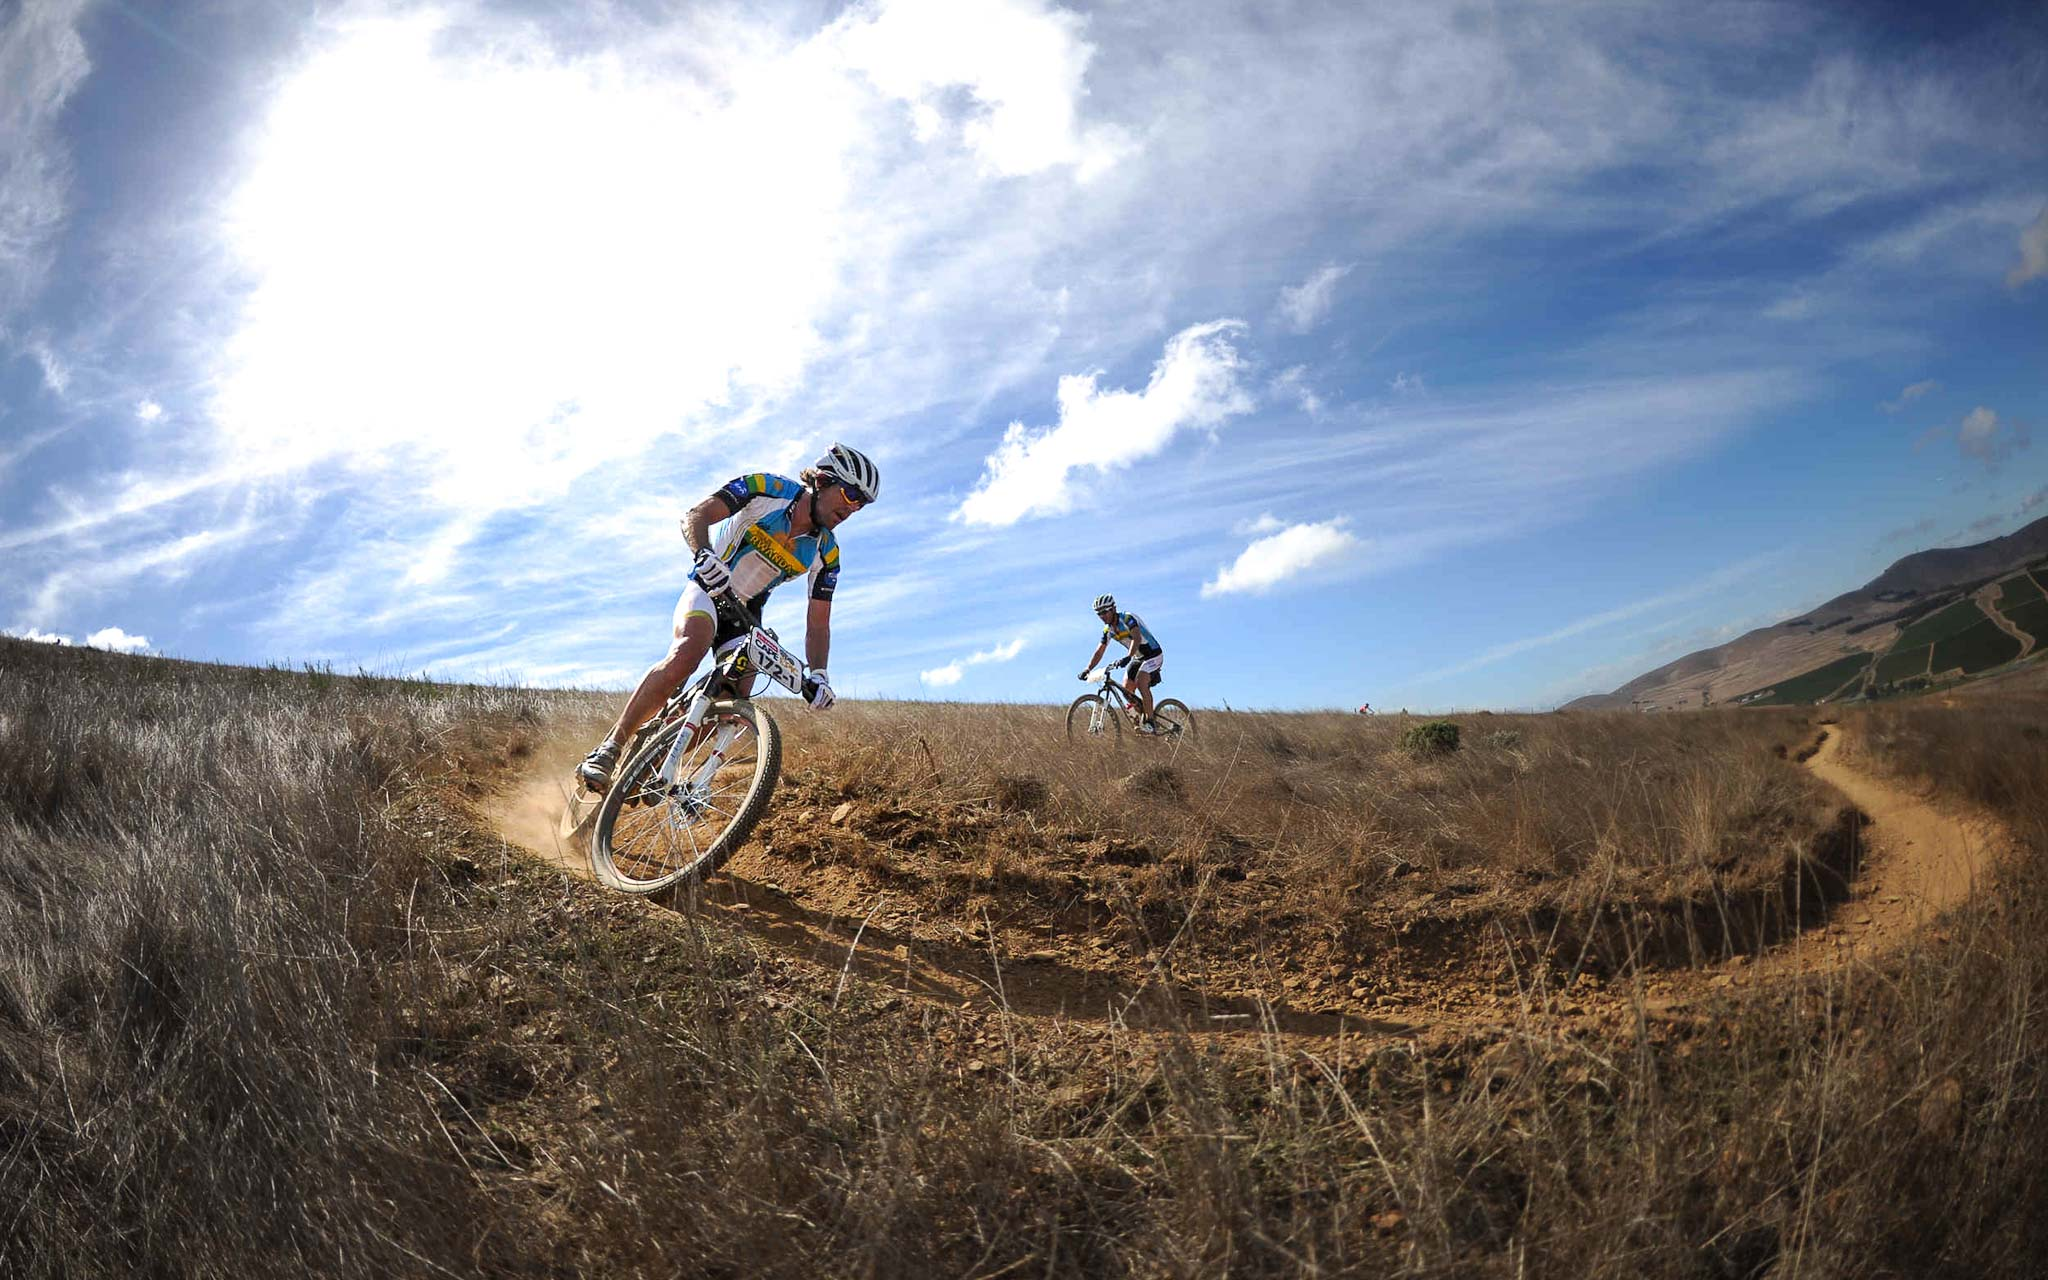 Thomas Frischknecht and Urs Grieg of Team Rwanda Cycling 2 enjoying the singletrack riding during the Prologue of the 2013 Absa Cape Epic Mountain Bike stage race held at Meerendal Wine Estate in Durbanville outside Cape Town, South Africa..Photo by Kelvin Trautman/Cape Epic/SPORTZPICS